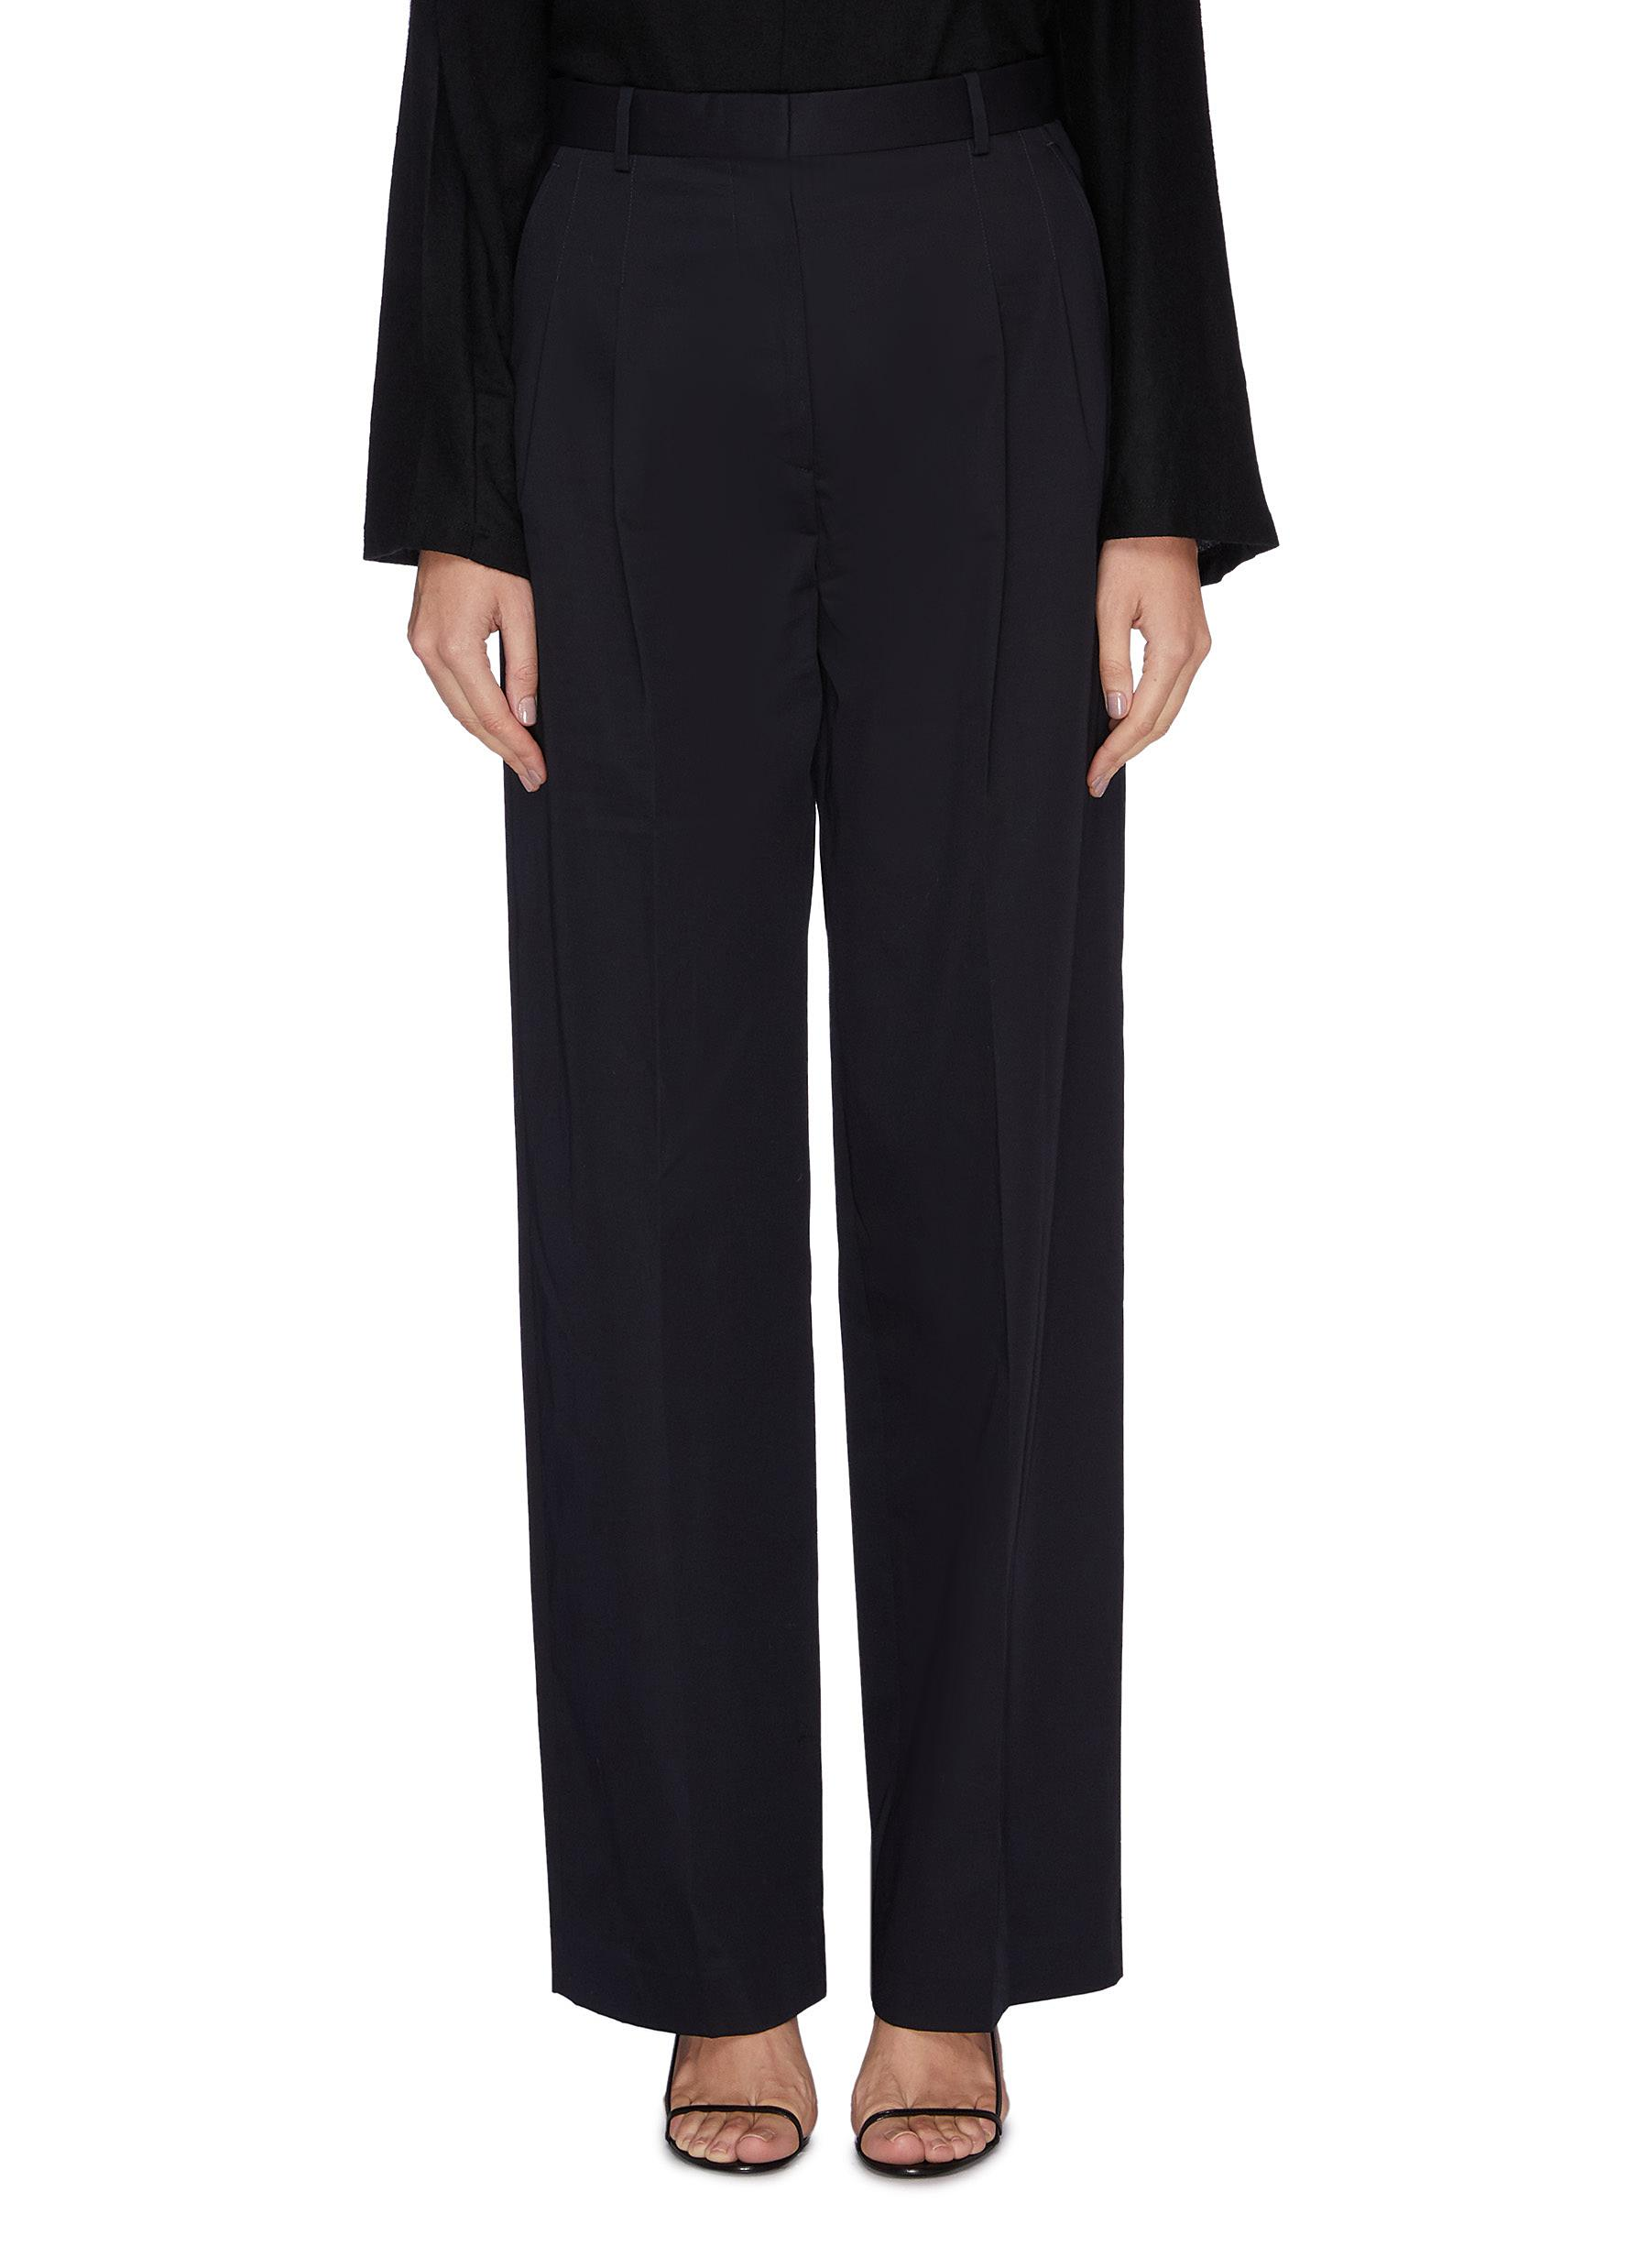 Moi pleated wide leg pants by The Row